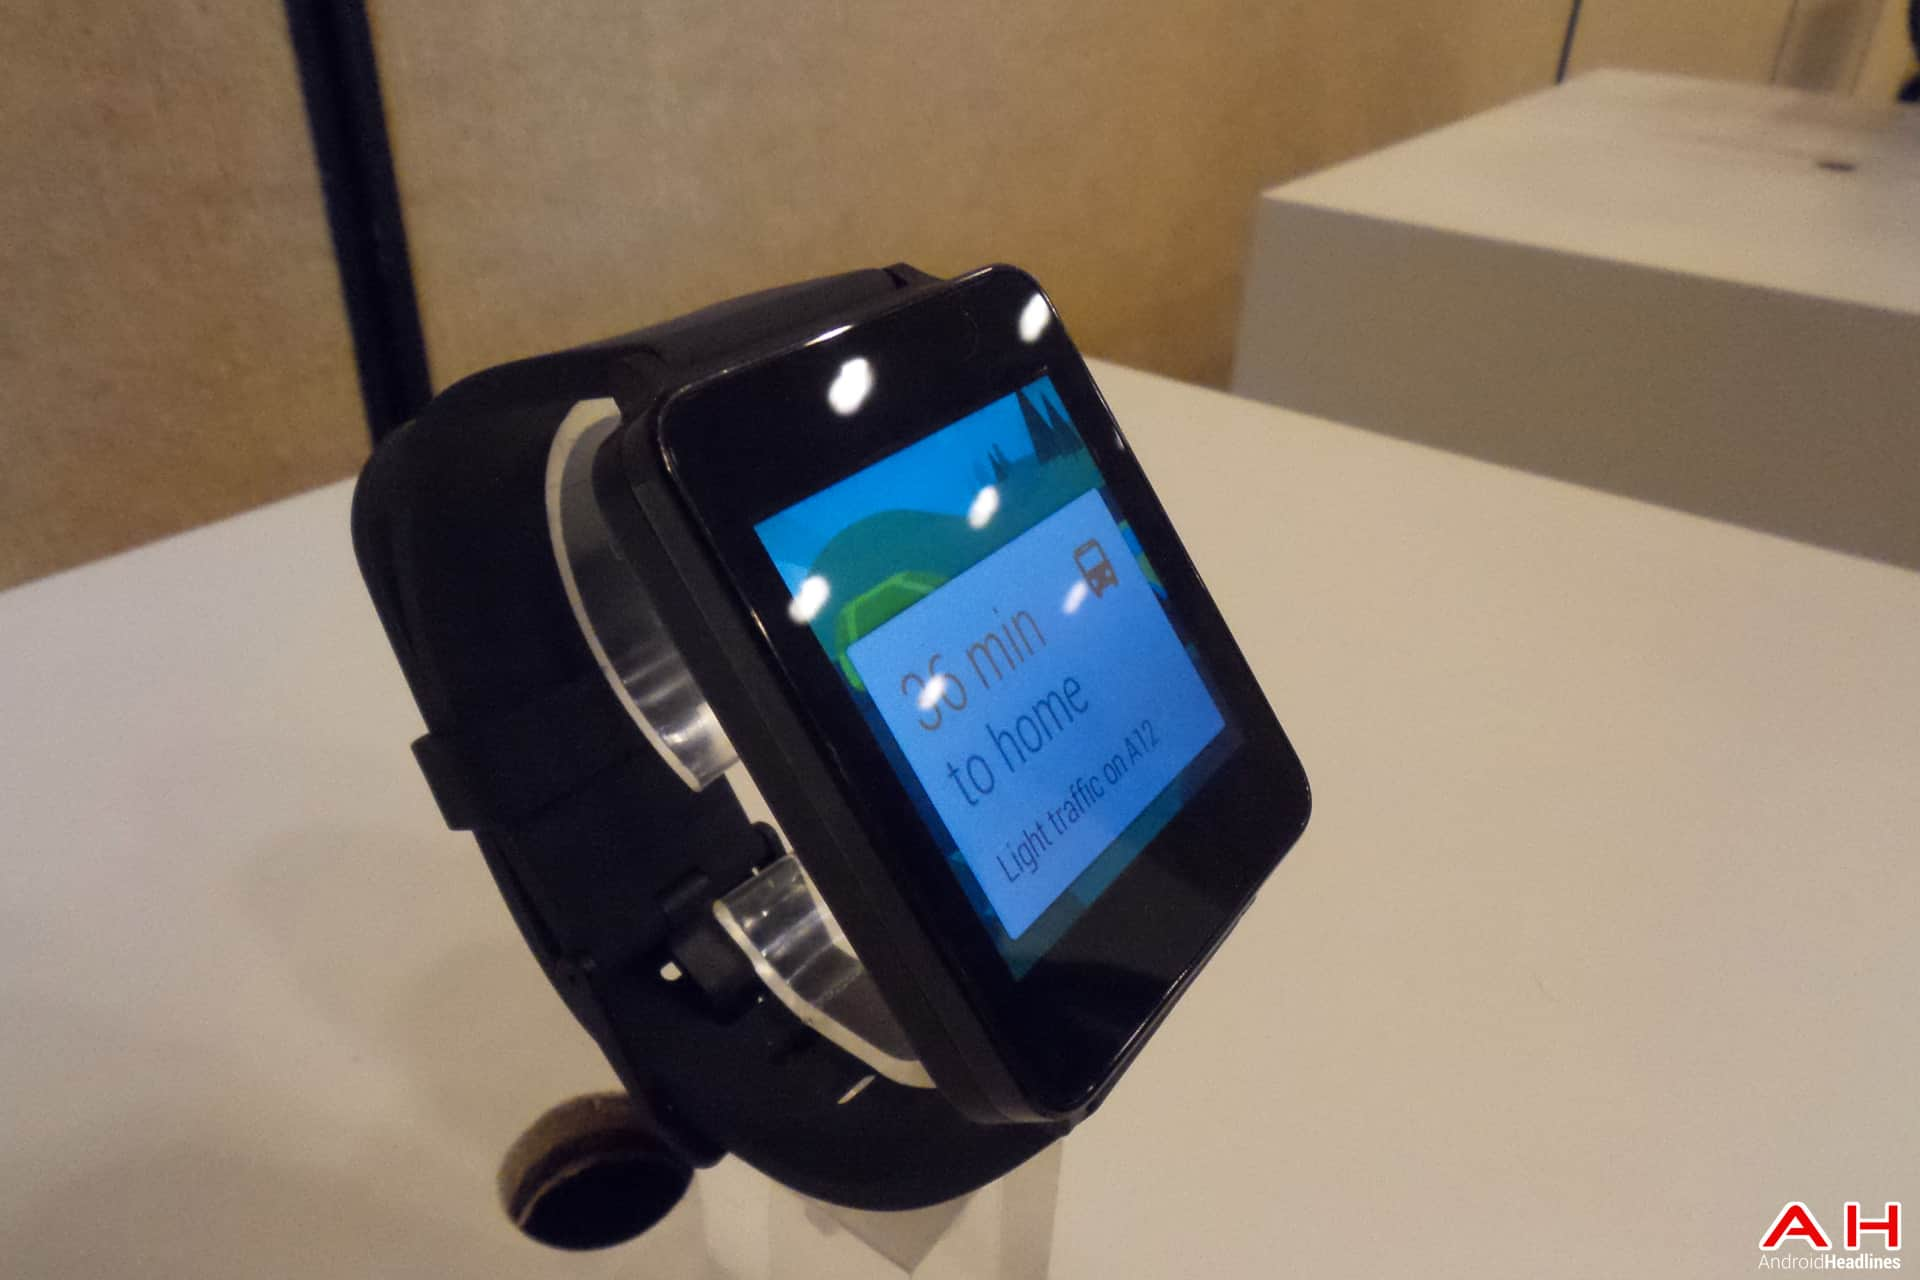 AH Google IO 2014 LG G Watch (1 of 10)